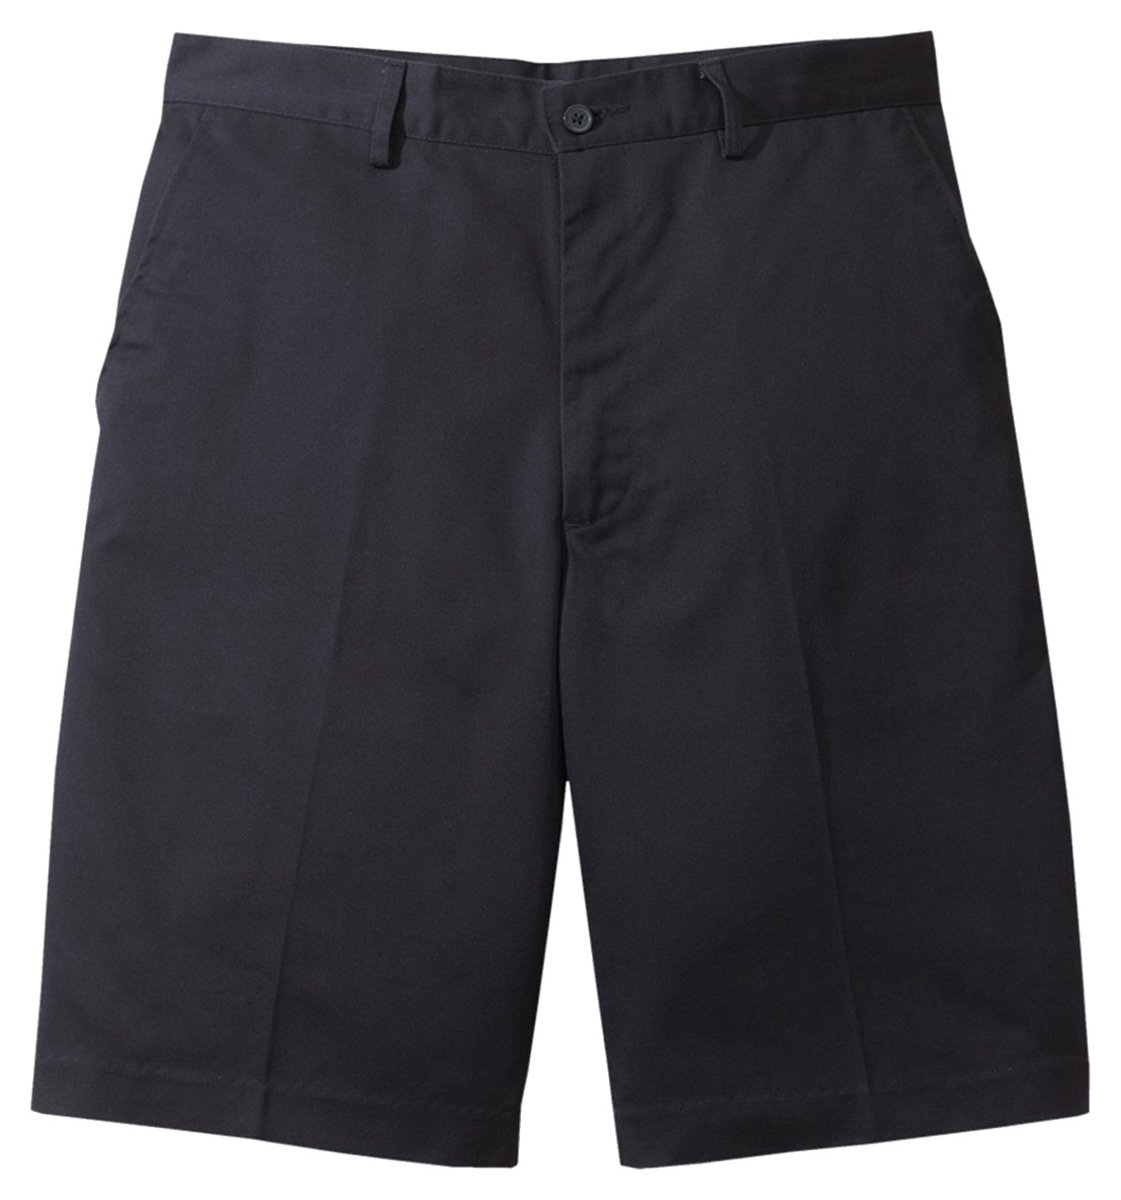 Ed Garments Men'S Flat Front Casual Chino Blend Short-Navy-52 by Edwards Garment